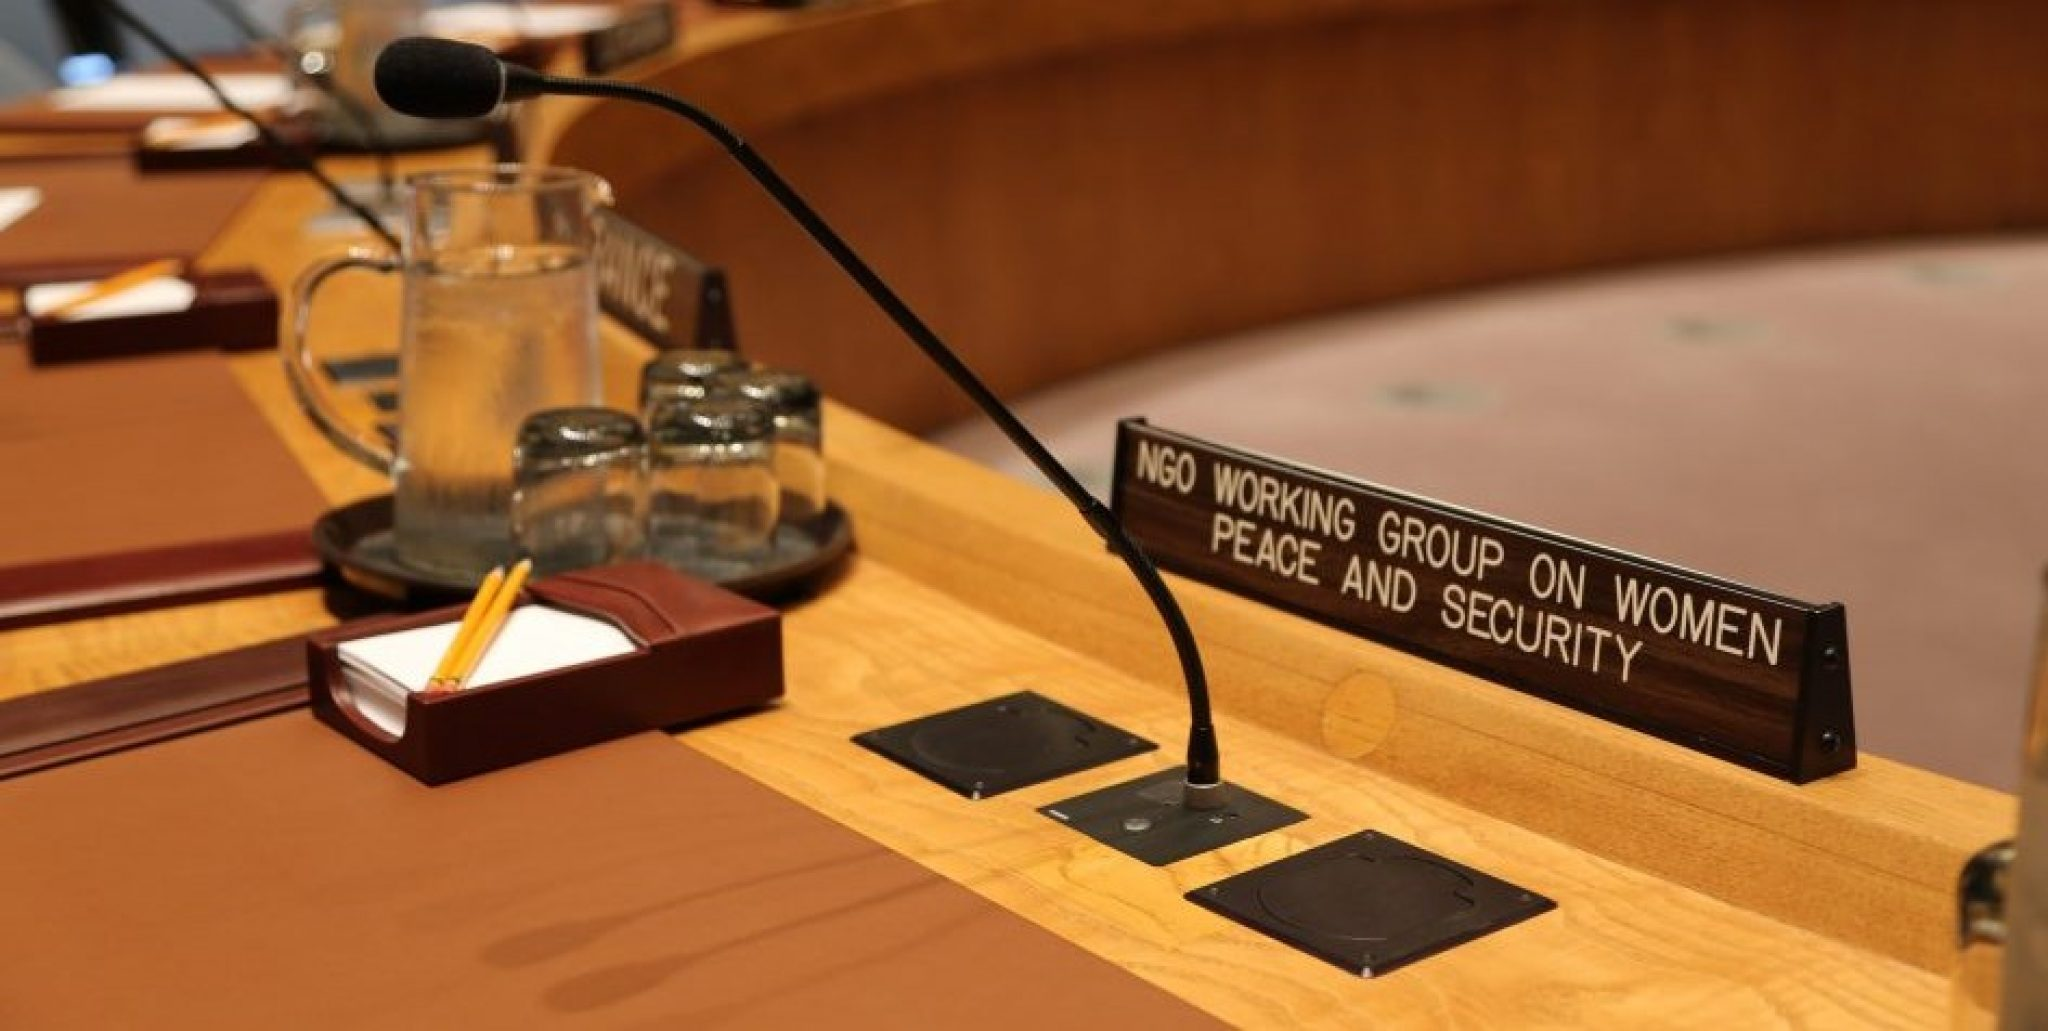 Why Women's Rights Must be Central to the UN Security Council's Response to COVID-19